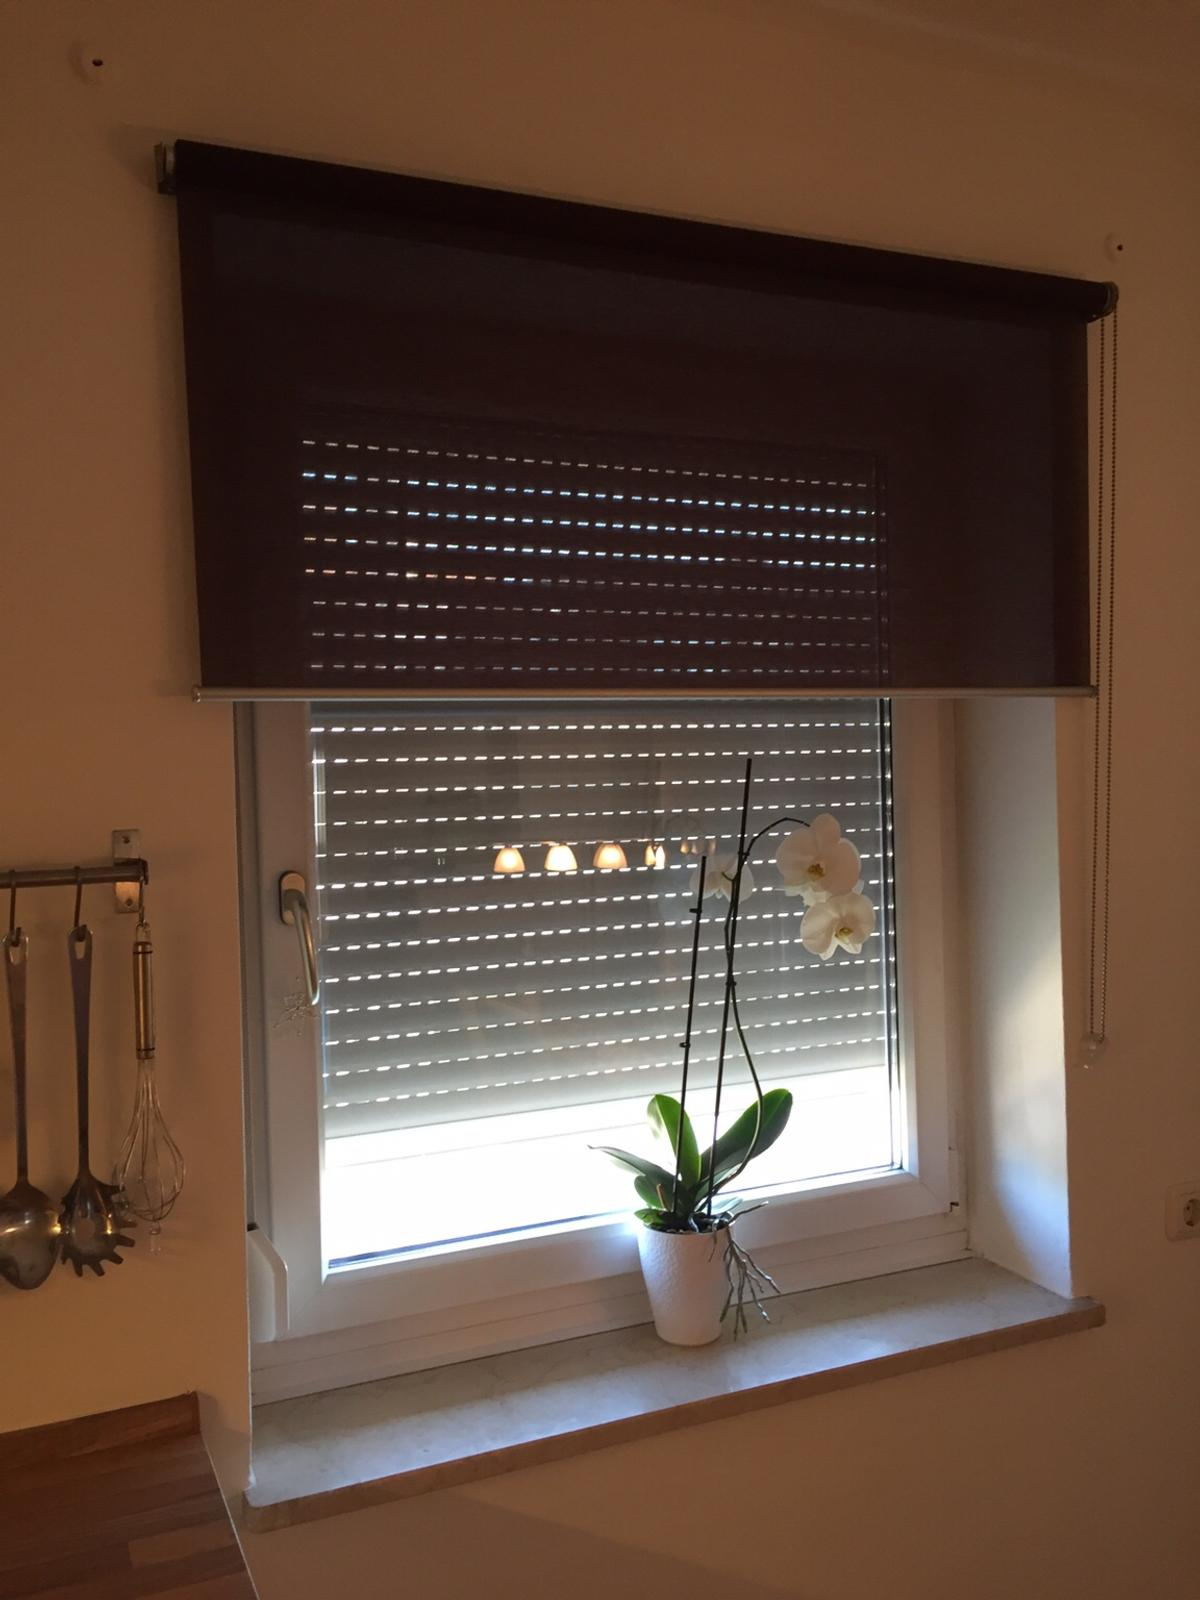 3x Ikea Lila Vorhang Rollo Verdunklungsrollo In 83395 Freilassing For 19 00 For Sale Shpock - Ikea Vorhang Fenster